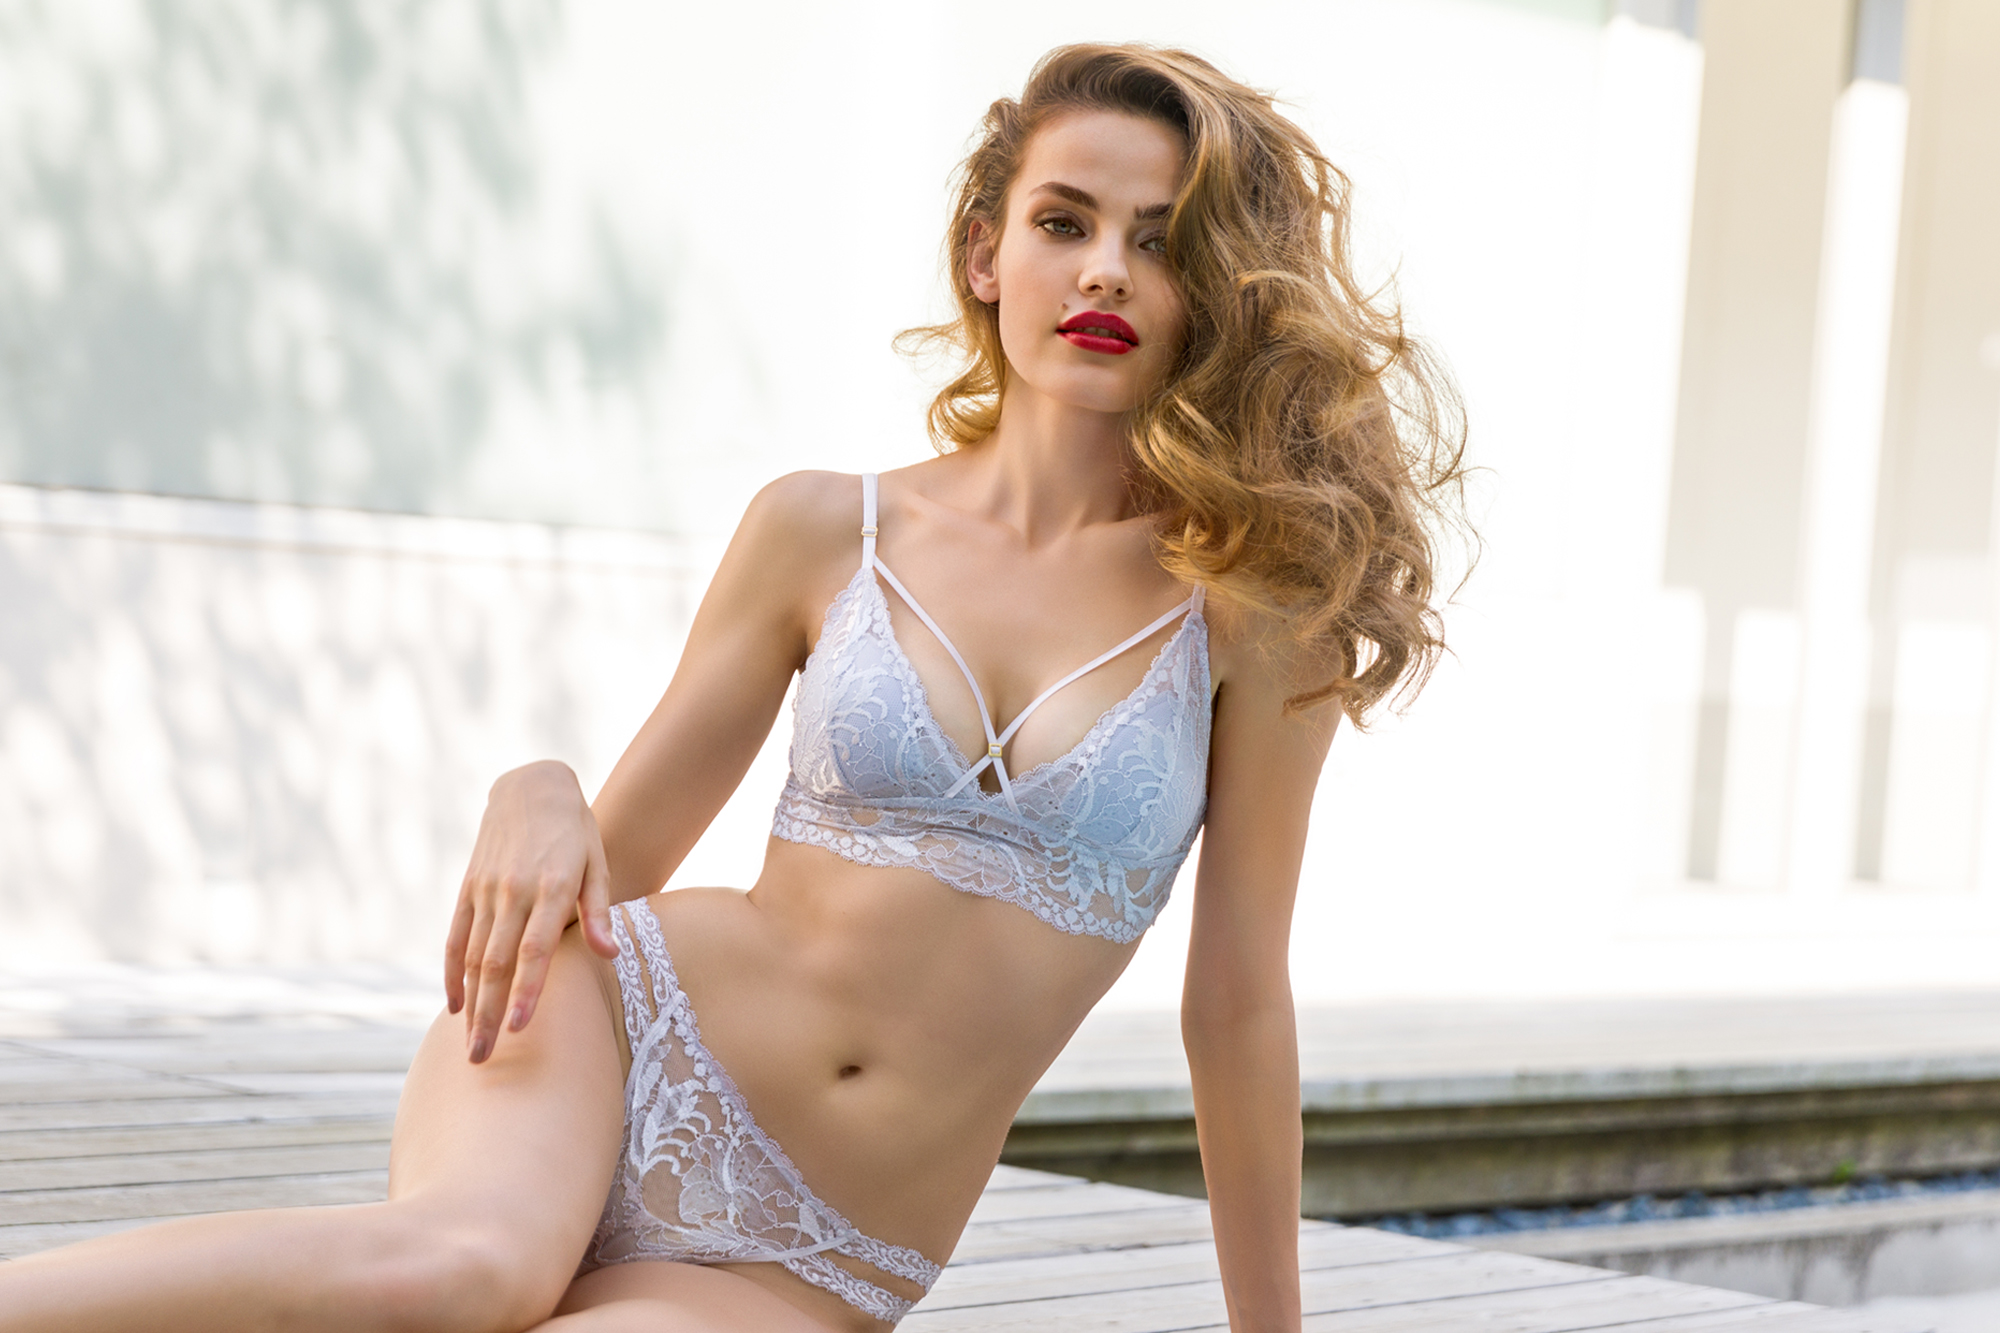 bradelis new york official site - everyday luxury lingerie since